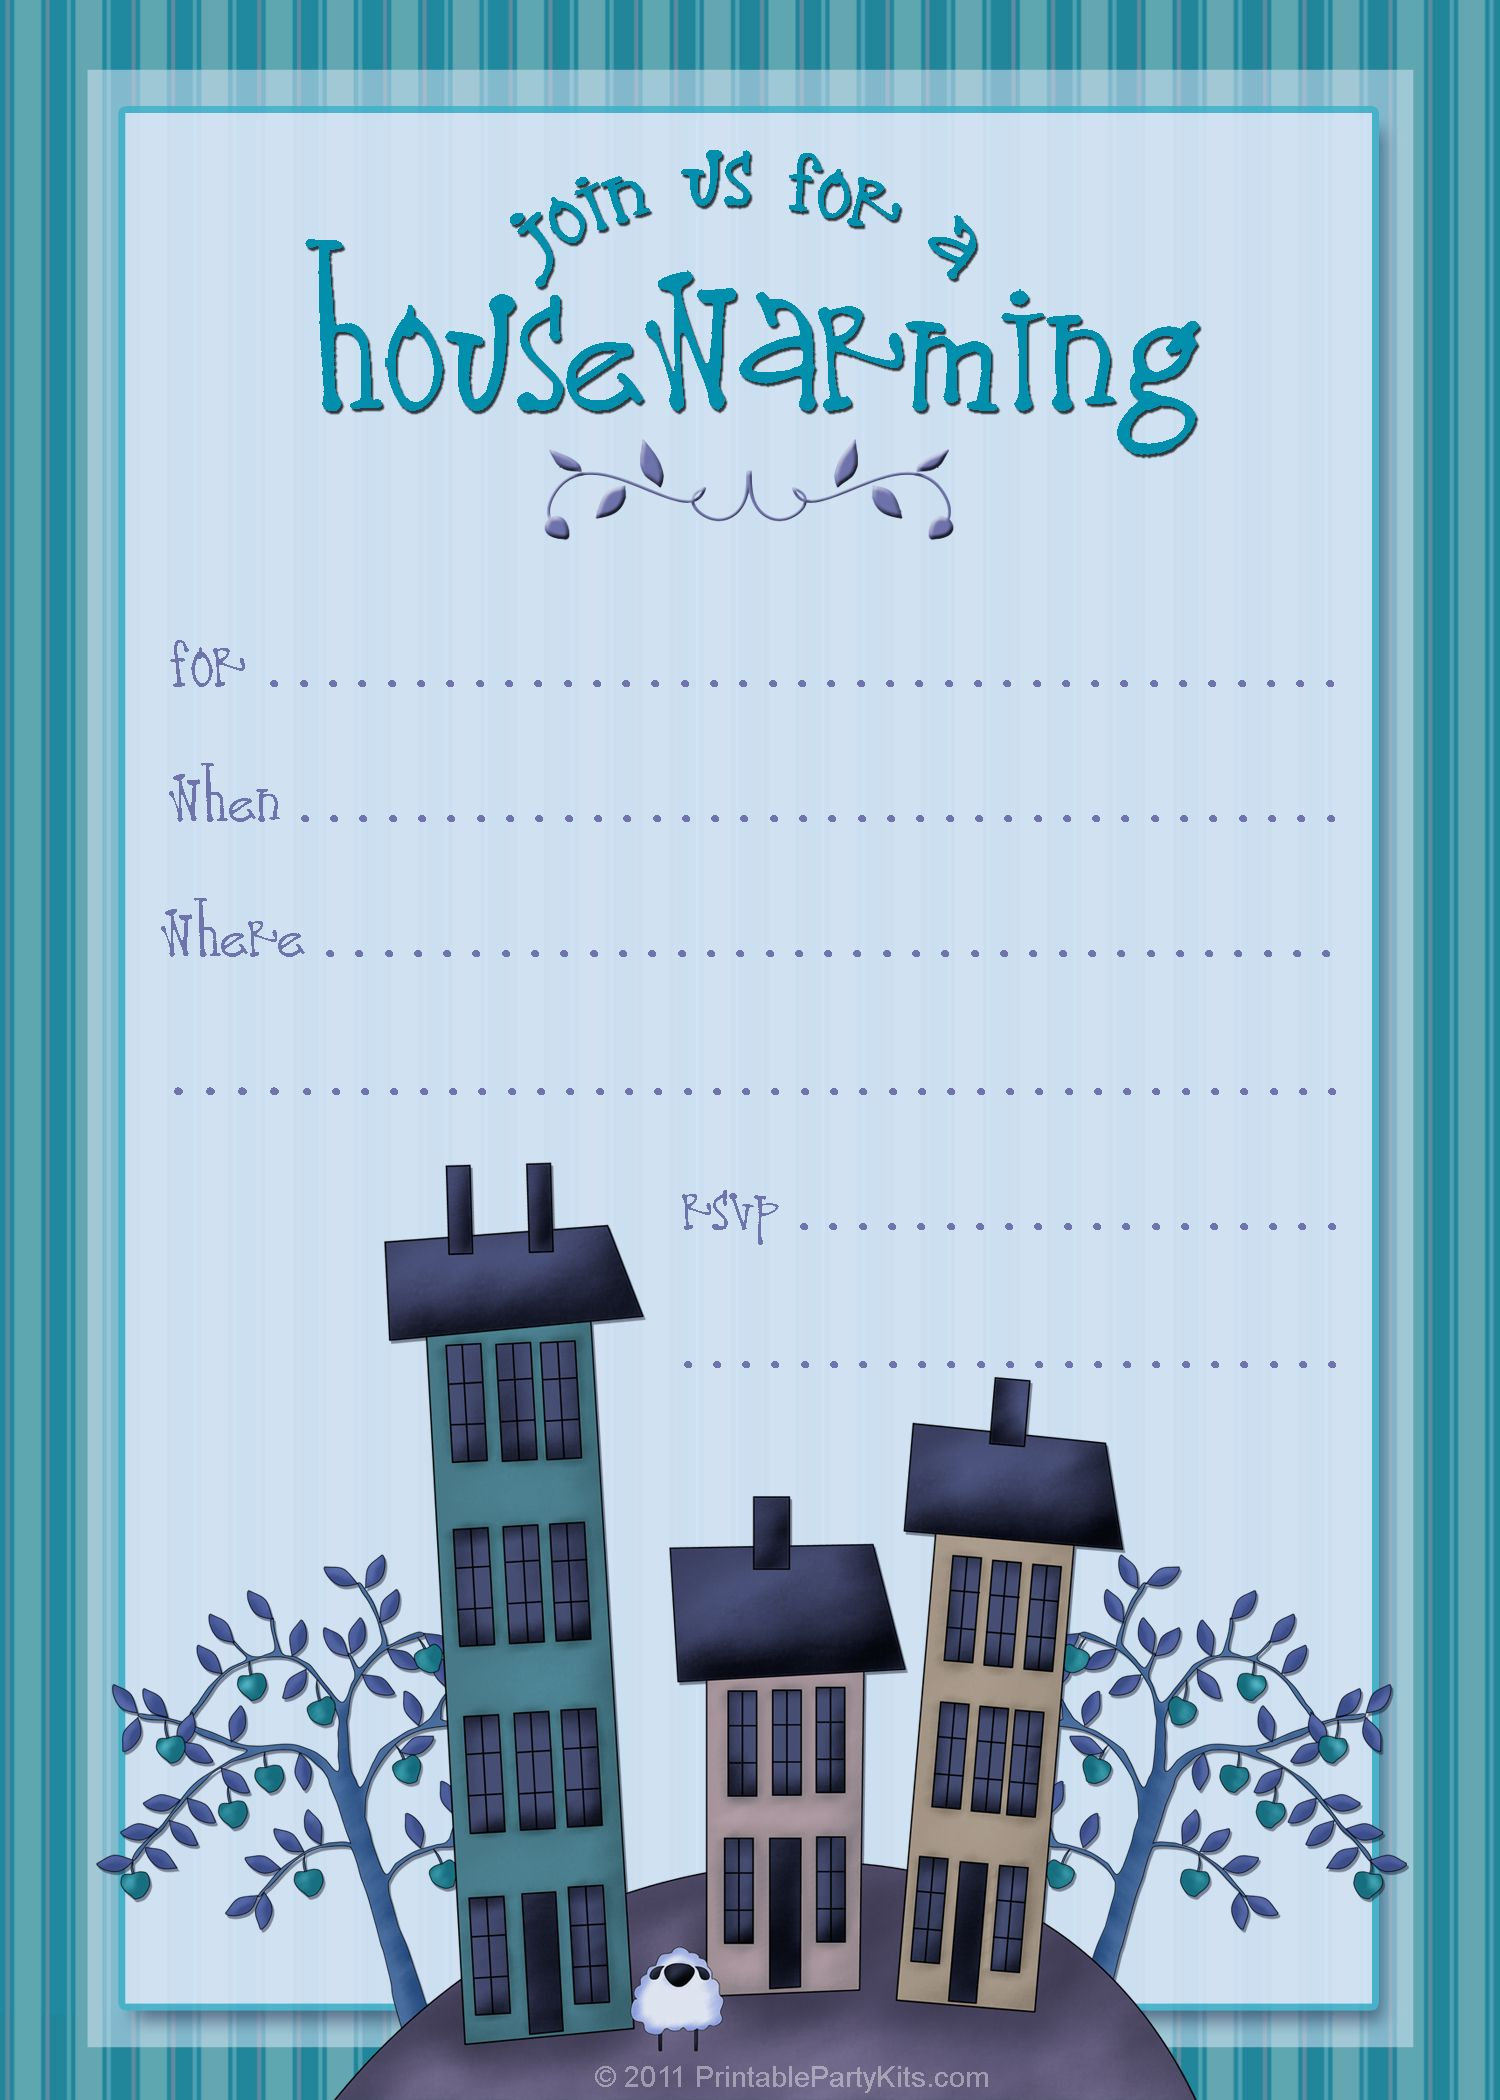 Housewarming invite template tanveer pinterest housewarming housewarming invite template stopboris Choice Image